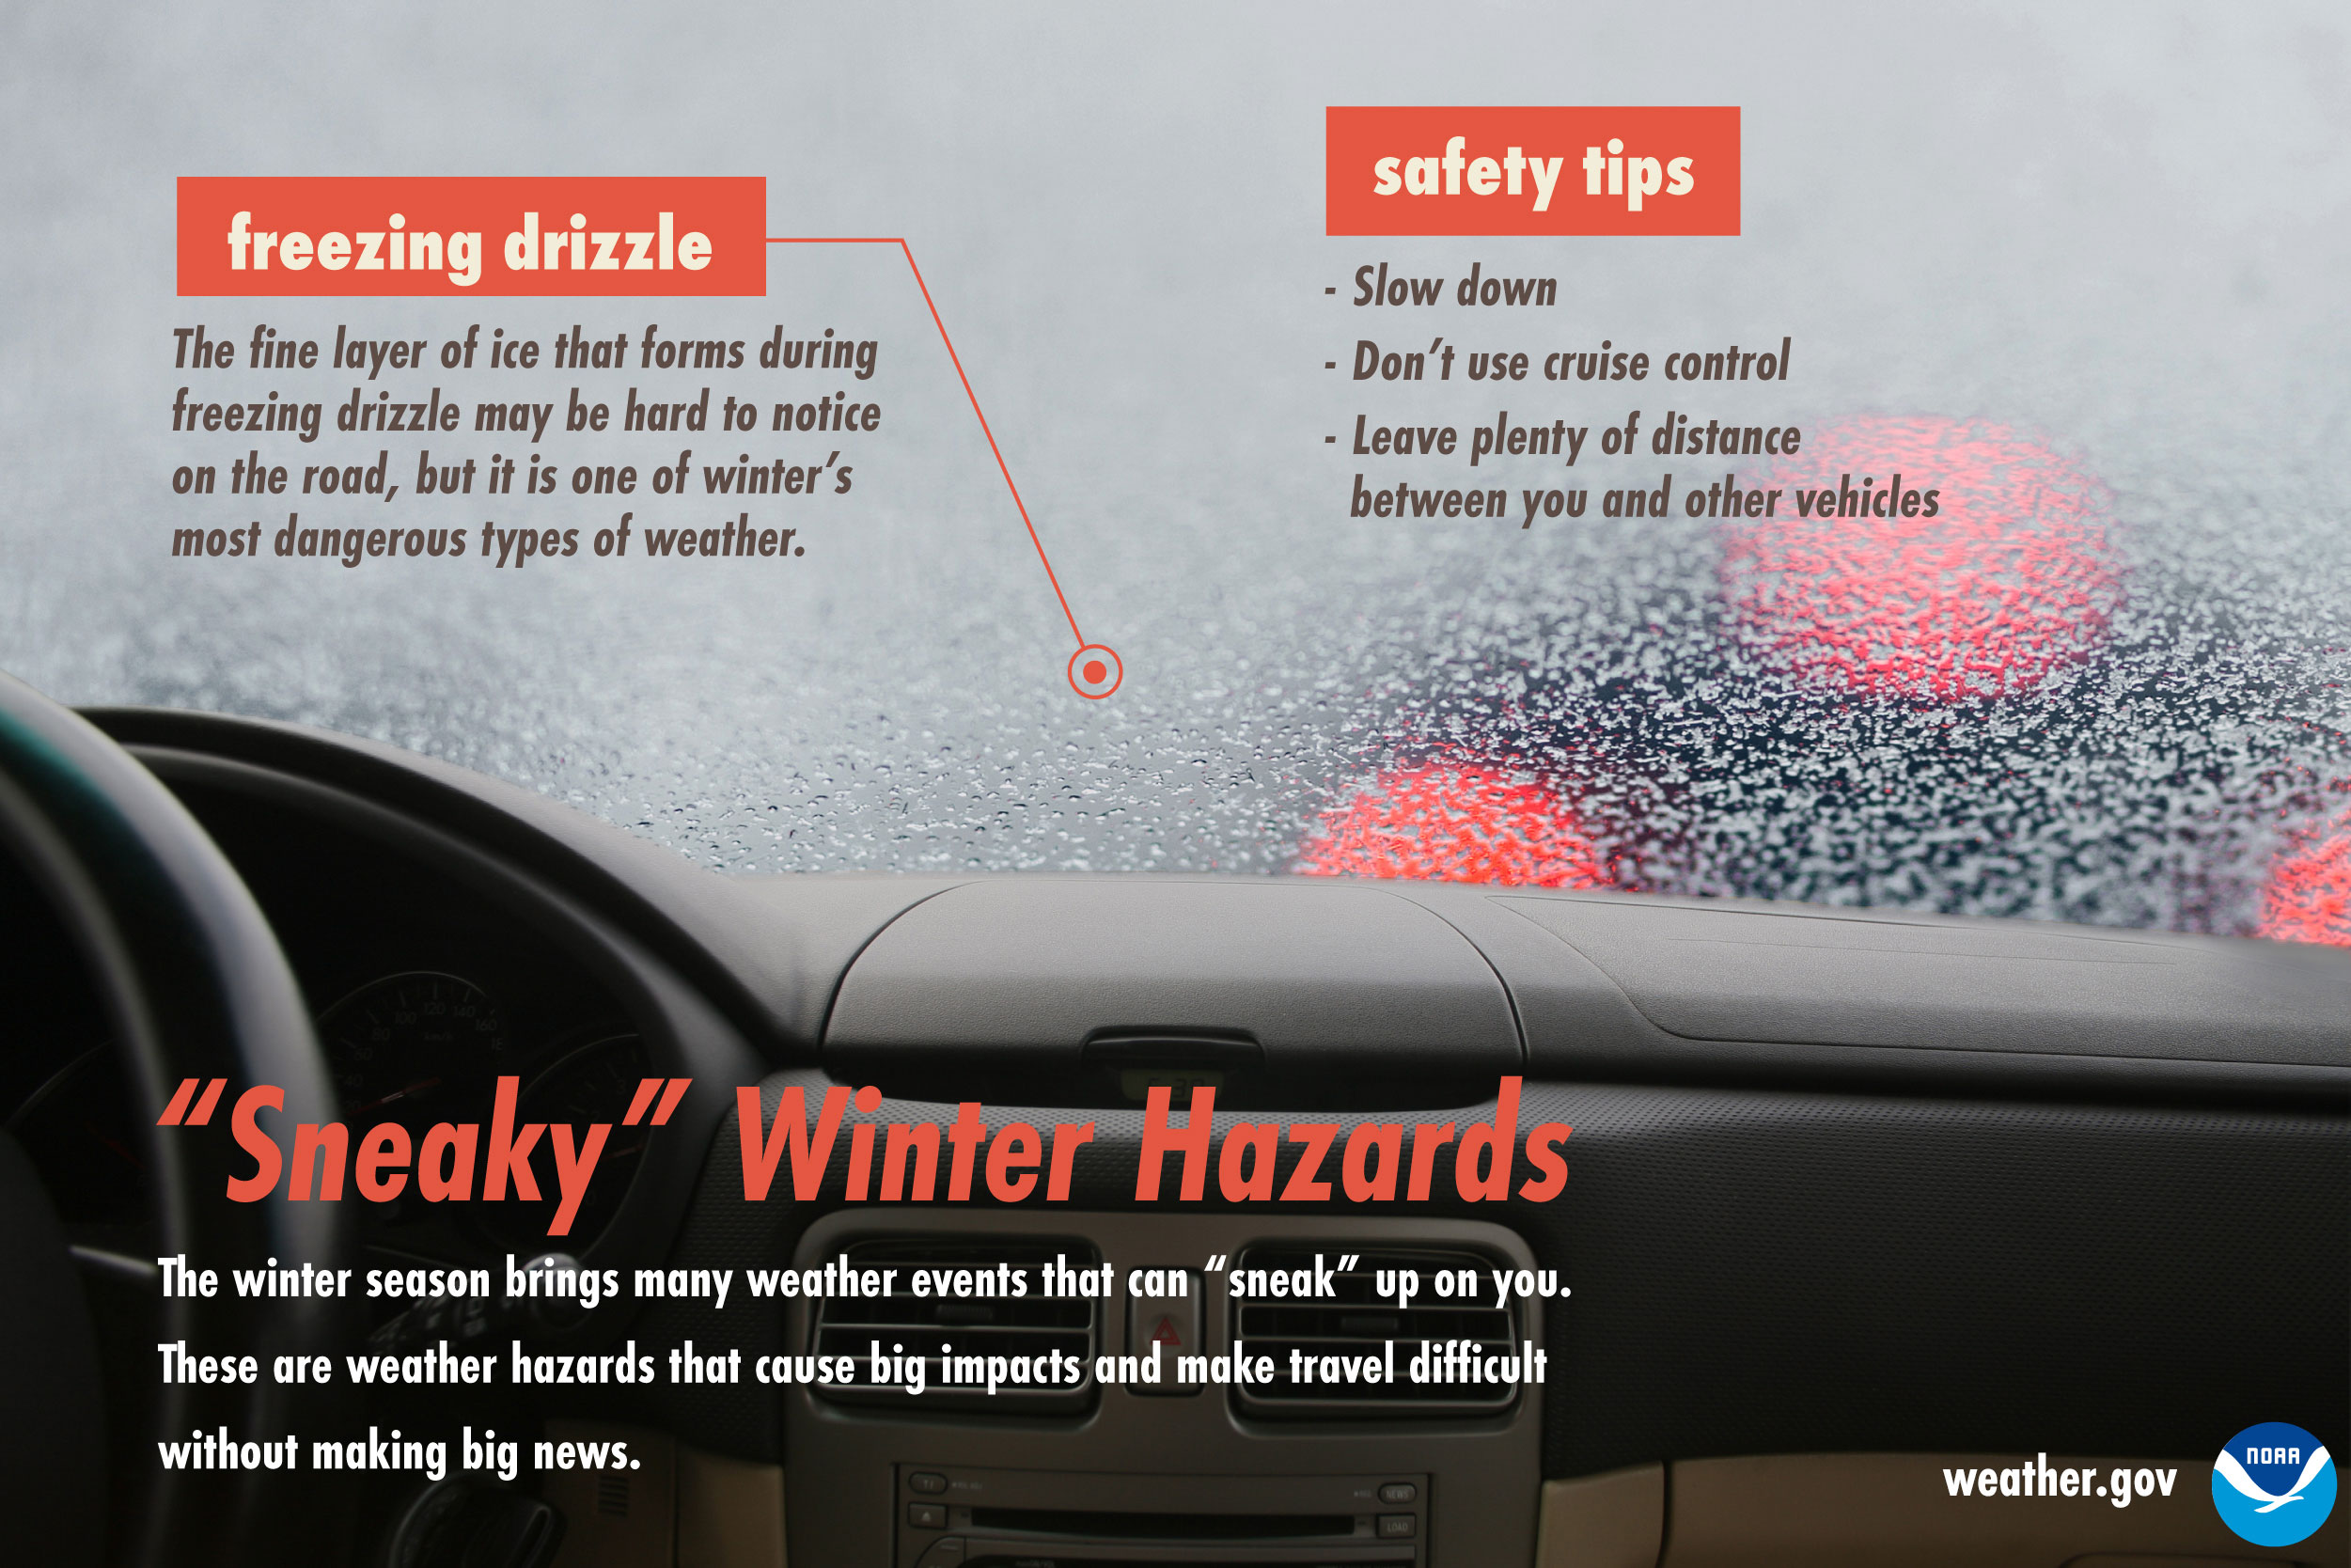 Sneaky Winter Hazards: Freezing drizzle